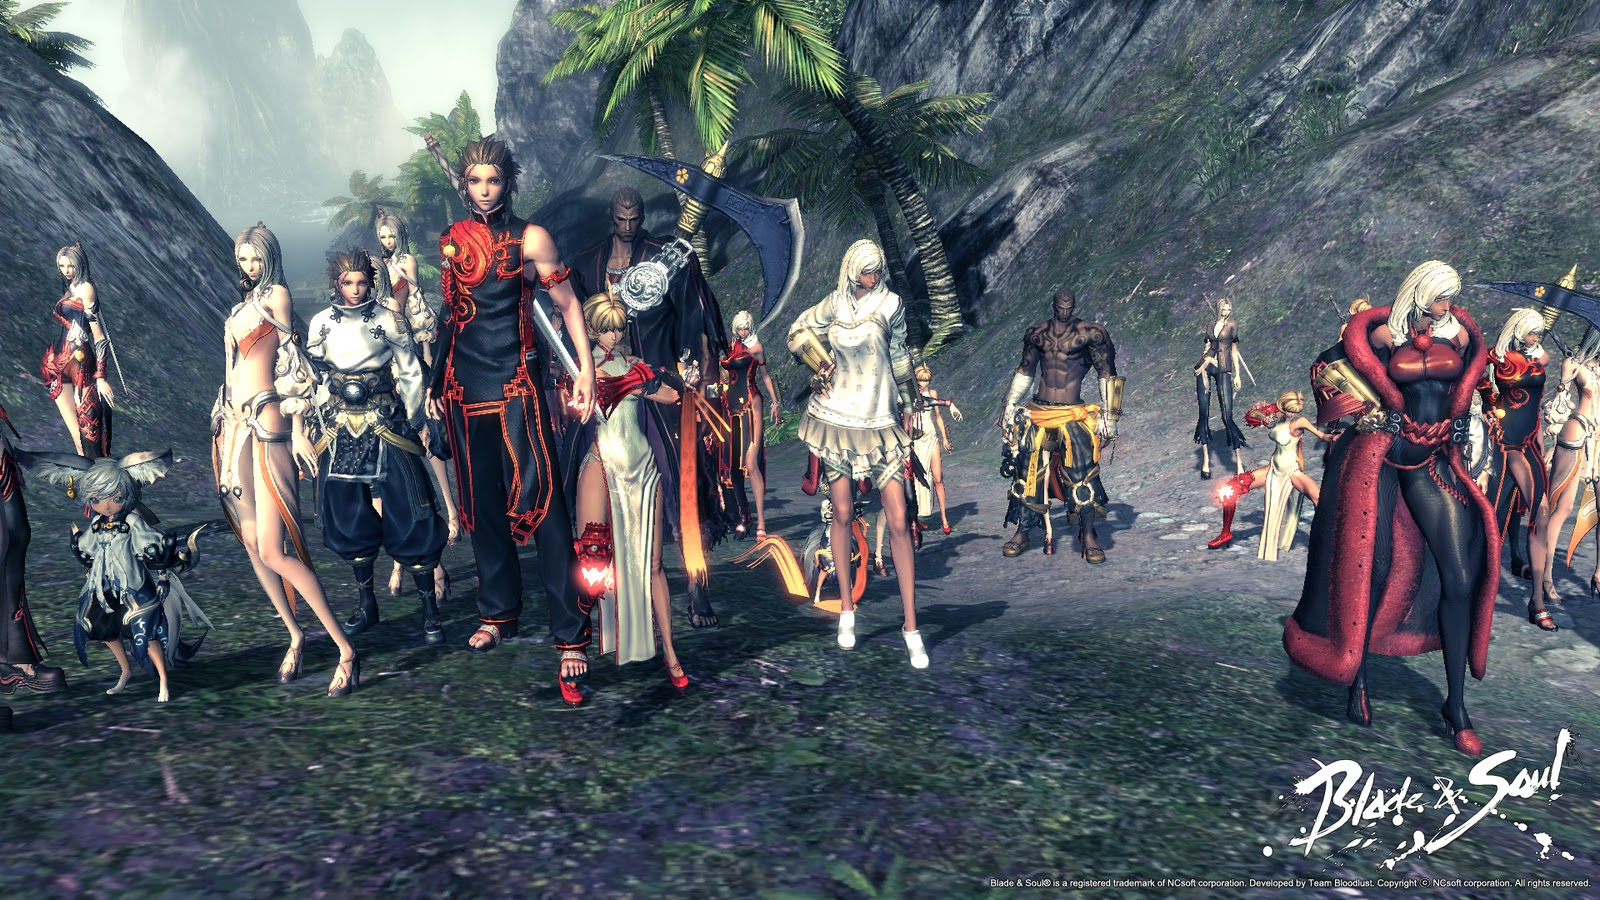 NCSoft made a contract with Tencent to distribute its popular game Blade & Soul in China on May 16, 2011.